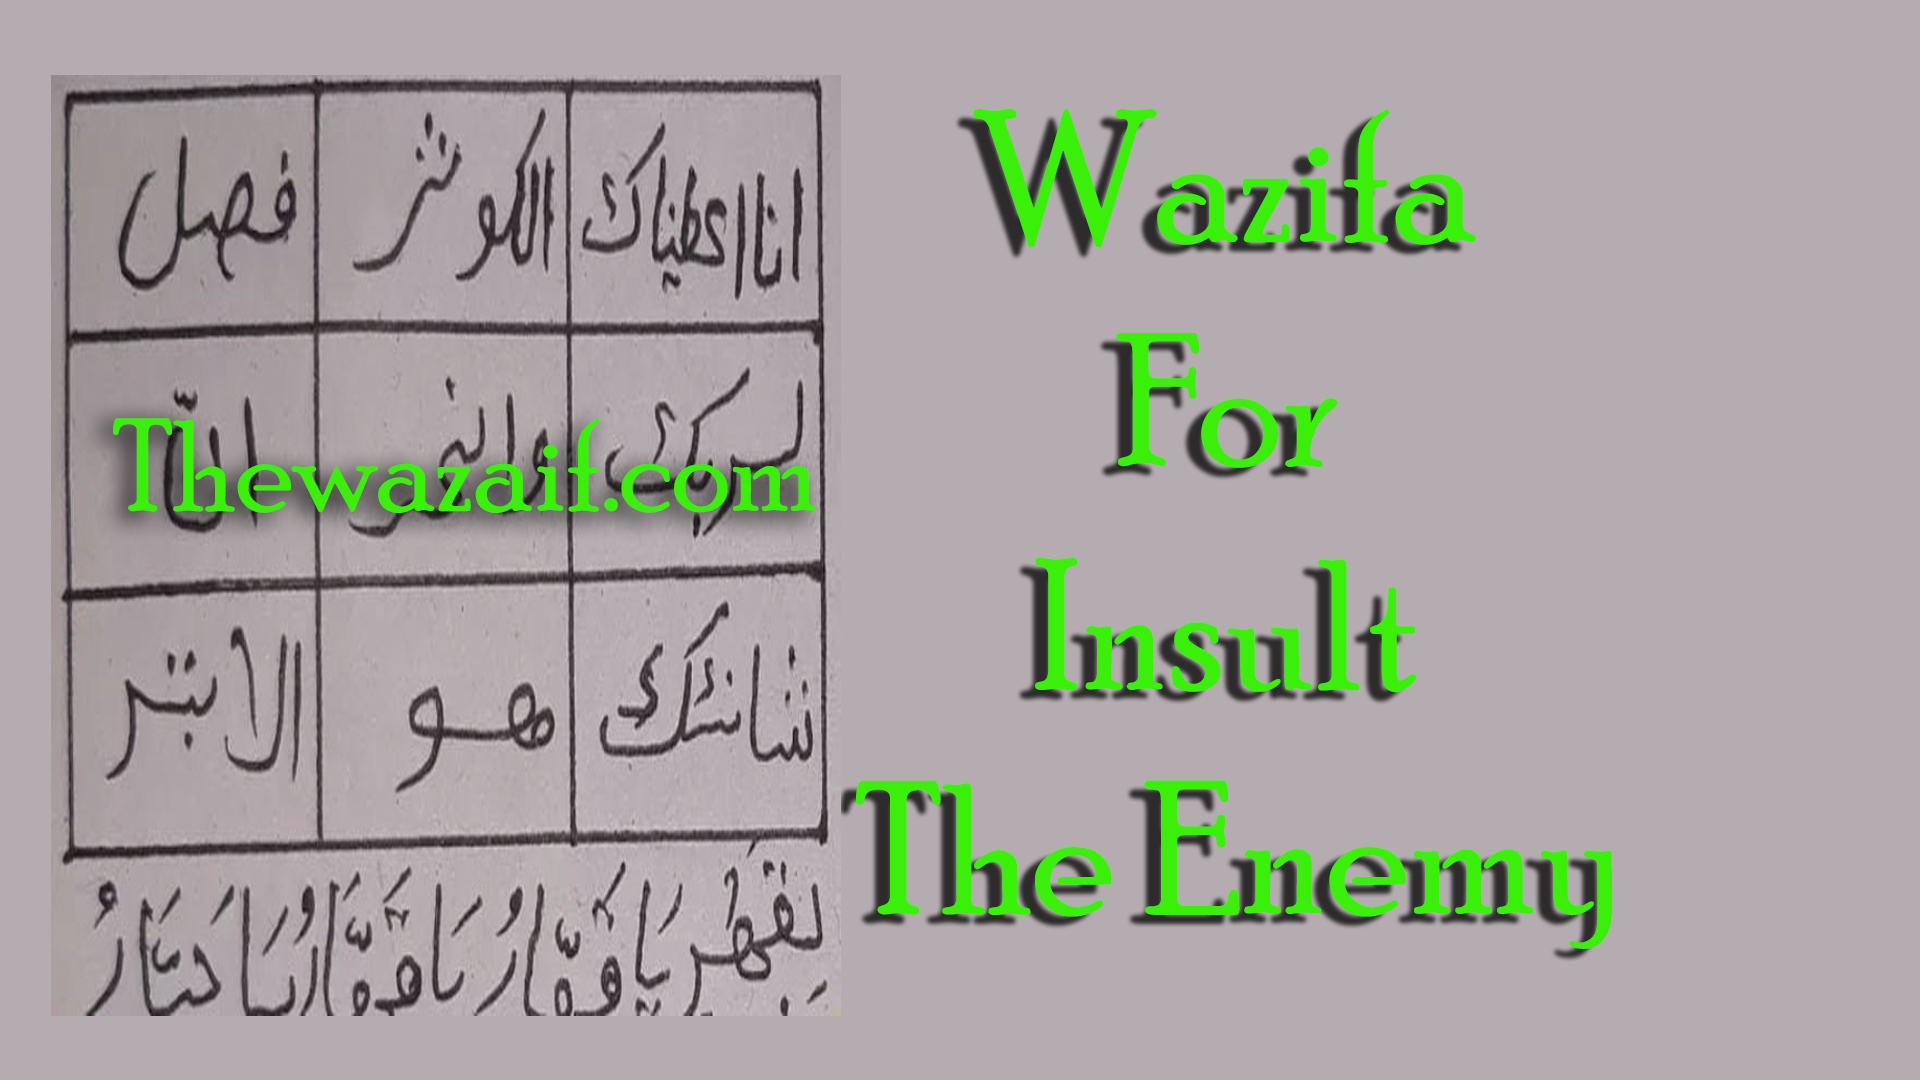 Guaranteed Wazifa For Insult The Enemy